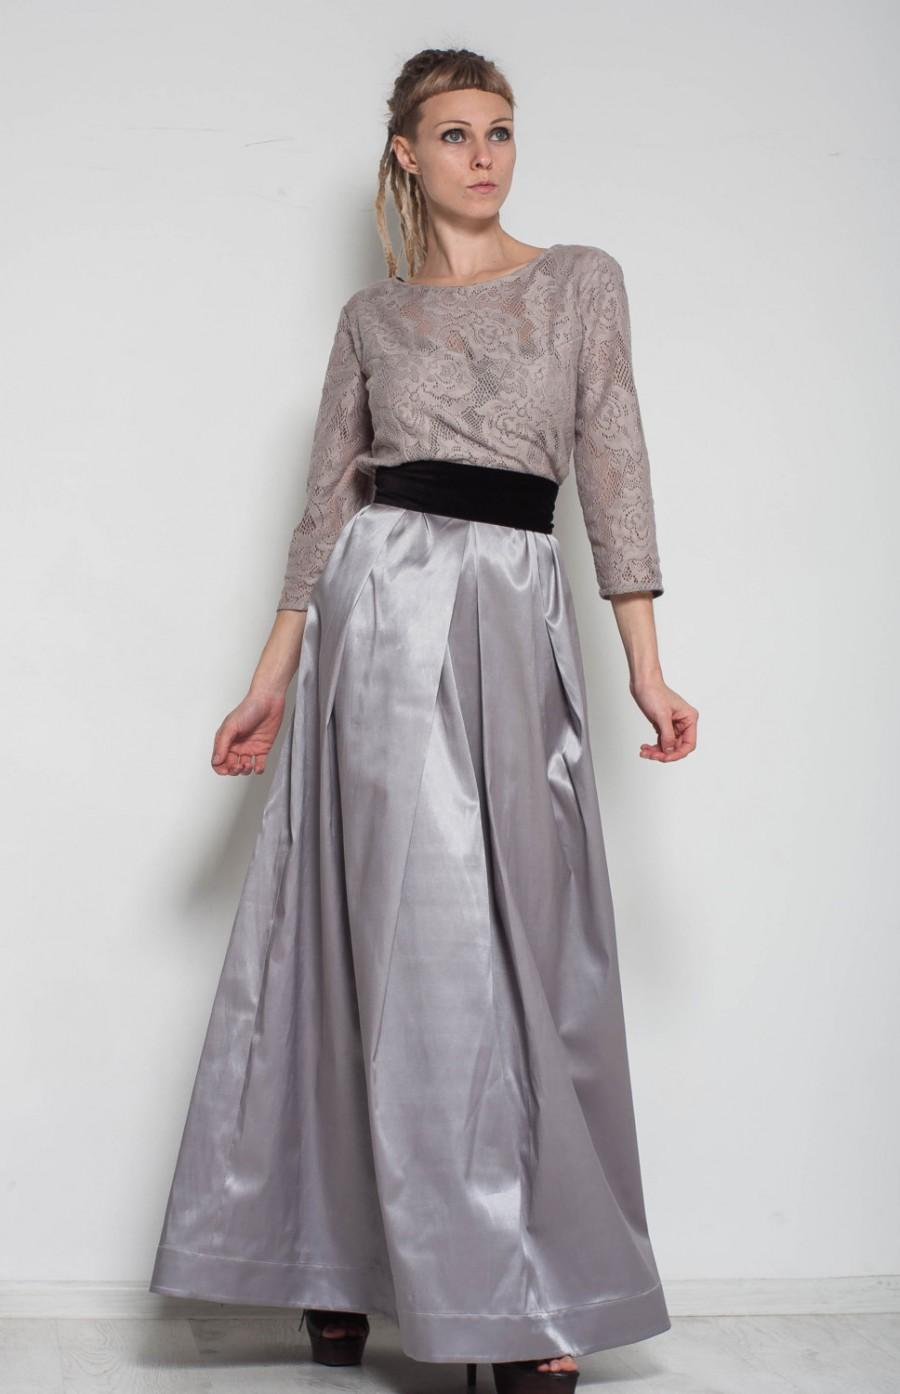 Maxi Formal Dress Evening Grey Dress Flared Lace Dress Long Sleeve